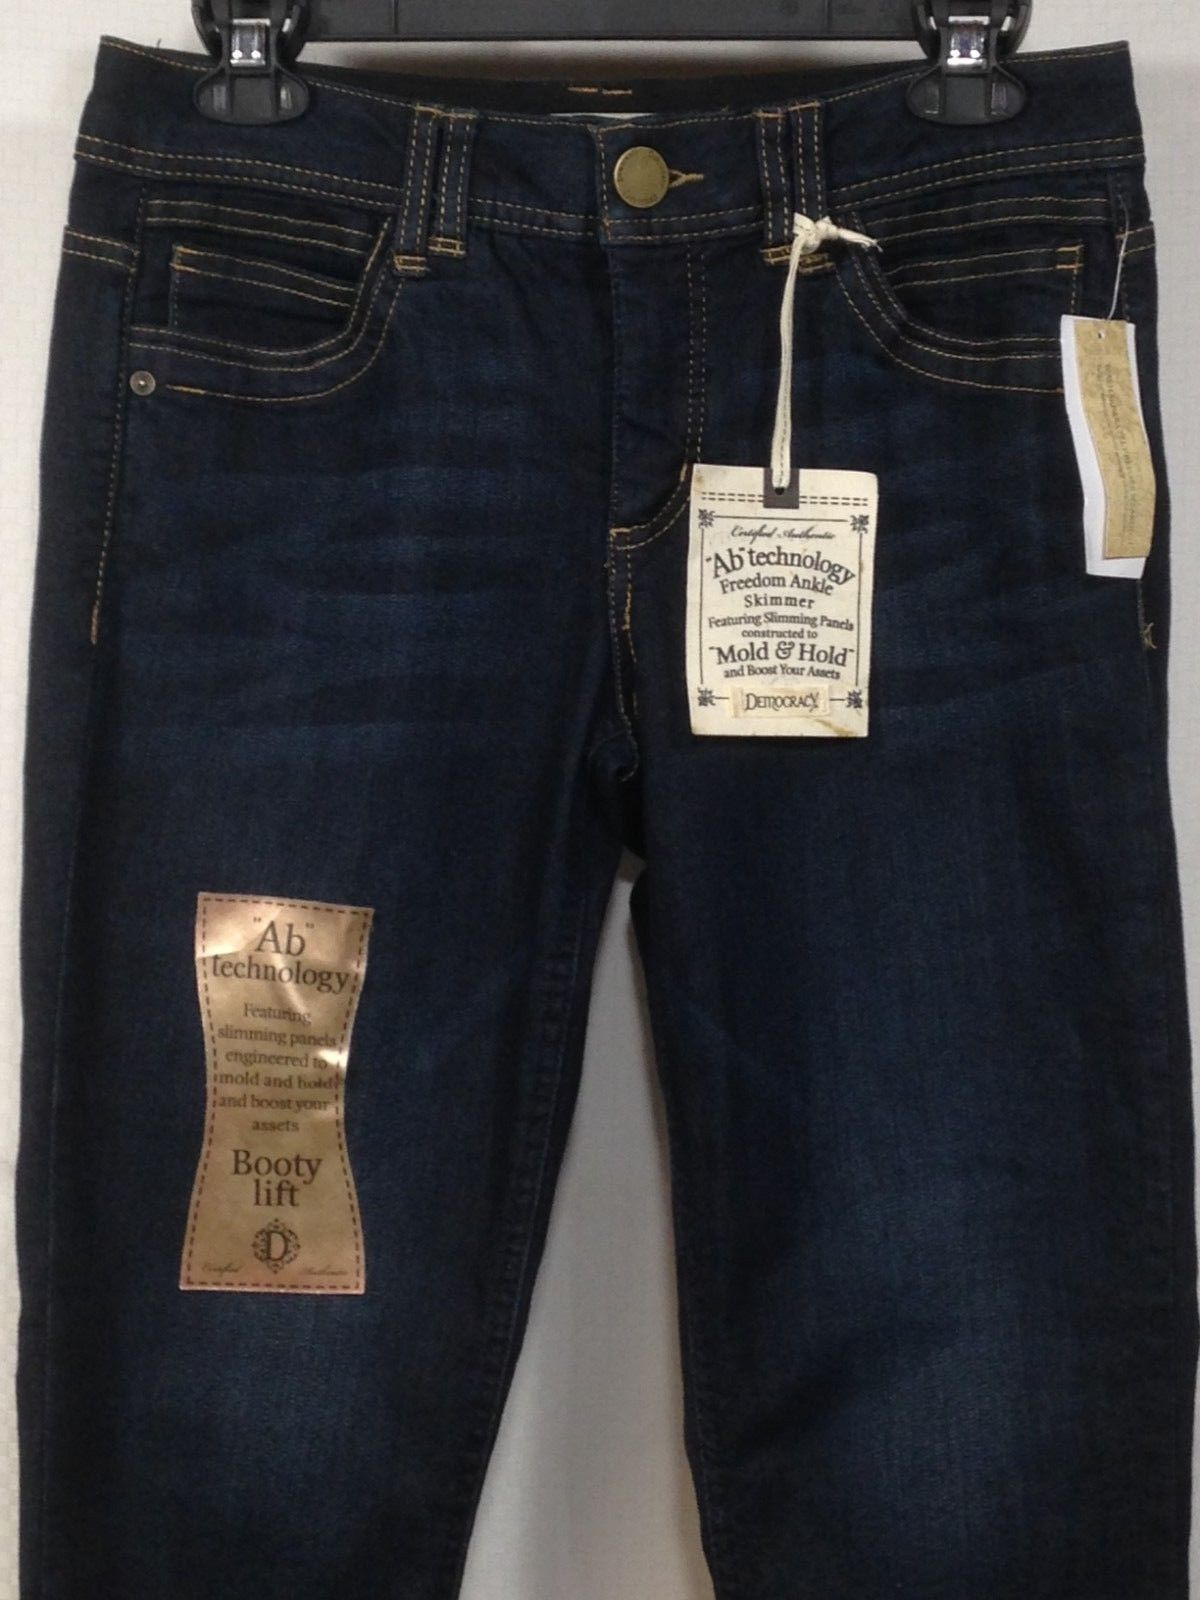 1b4651400b 49.99 | Democracy Ab Technology Booty Lift Mold and Hold Denim Jeans Womens  Size 8 ❤ #democracy #technology #booty #lift #mold #hold #denim #jeans # womens ...